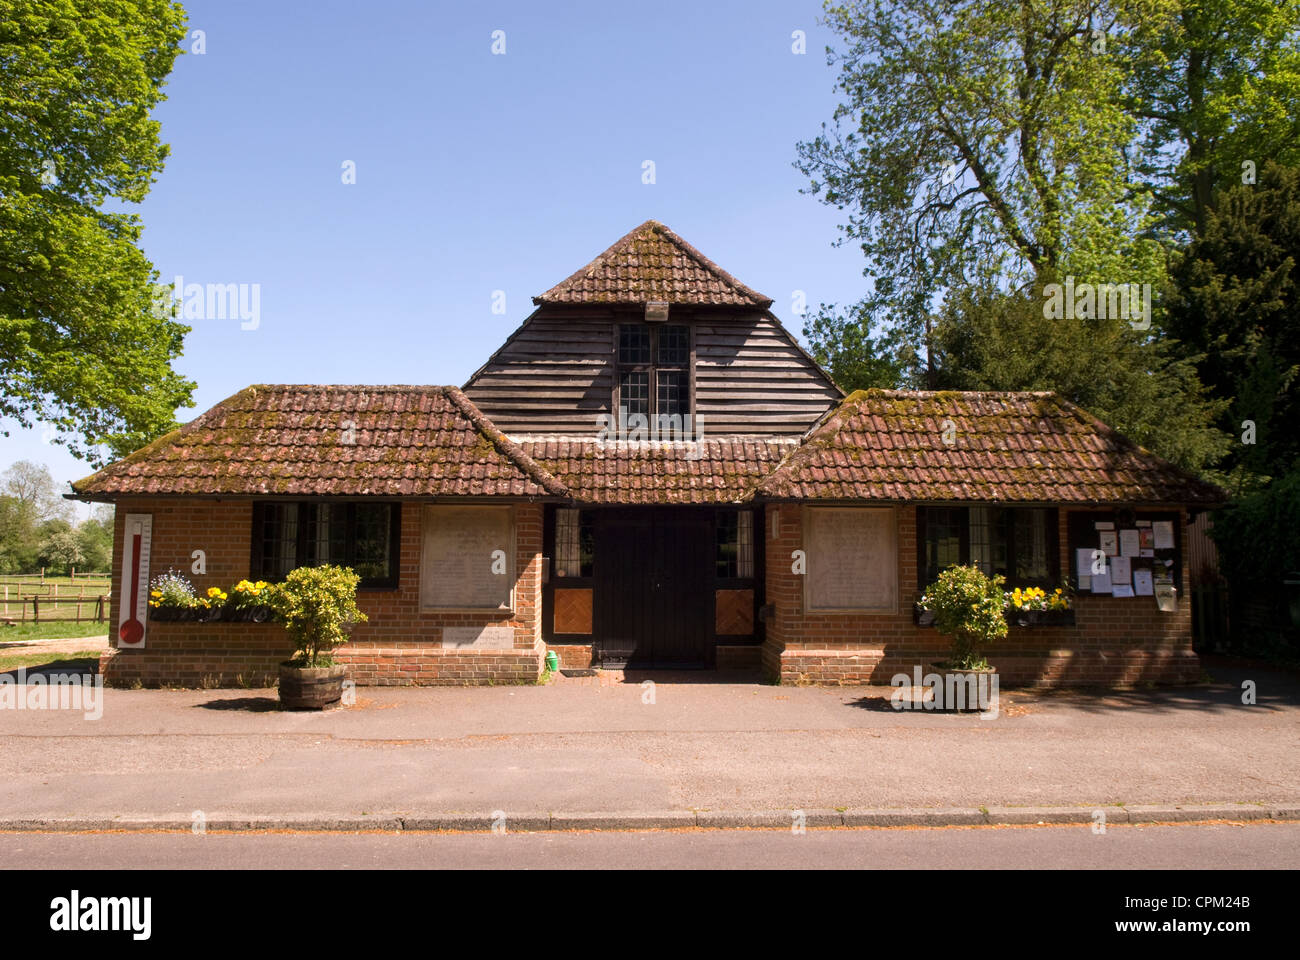 Village Hall in the rural village of Chawton, Hampshire, UK. - Stock Image